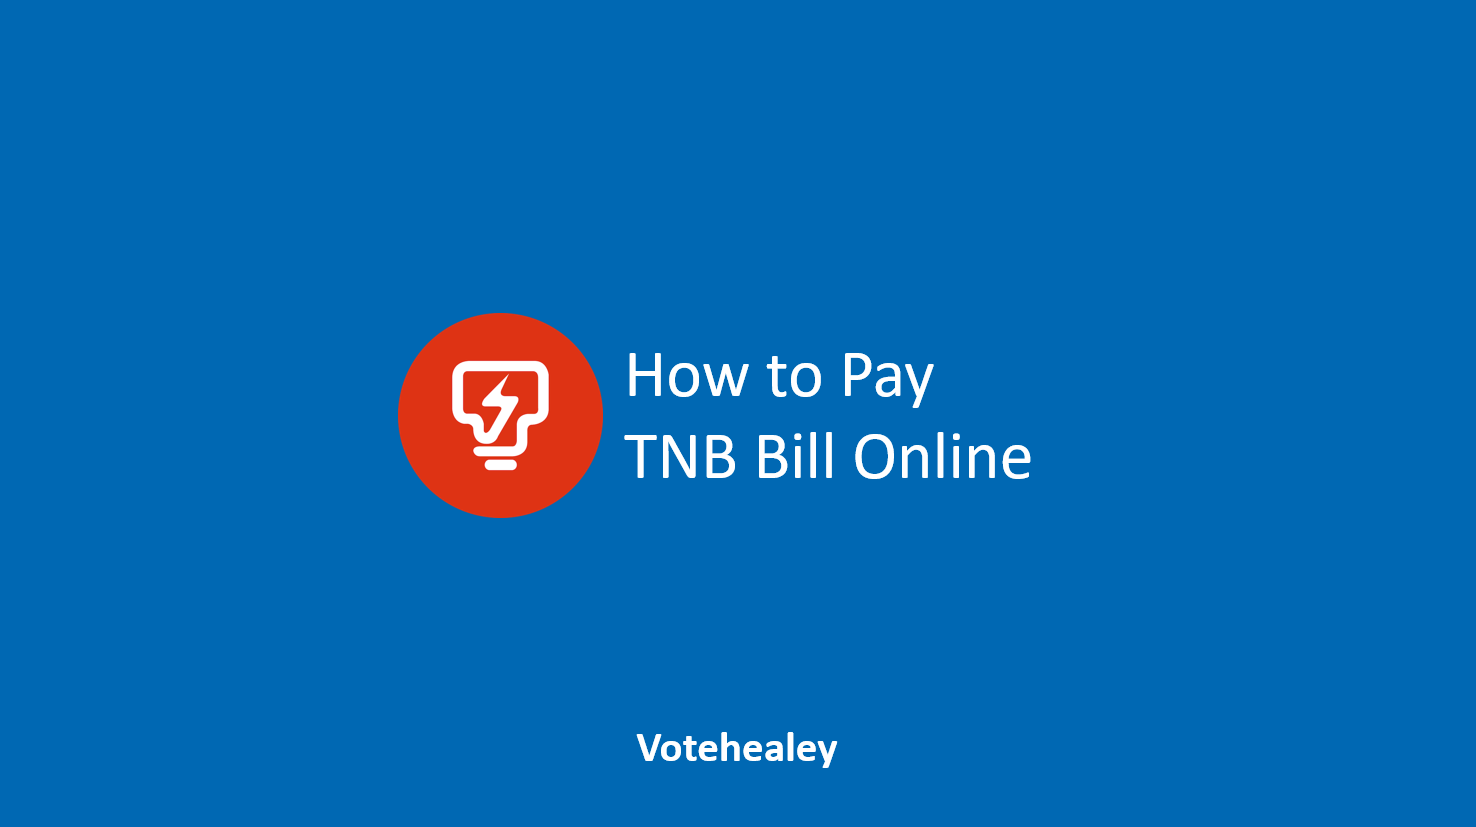 How to Pay TNB Bill Online